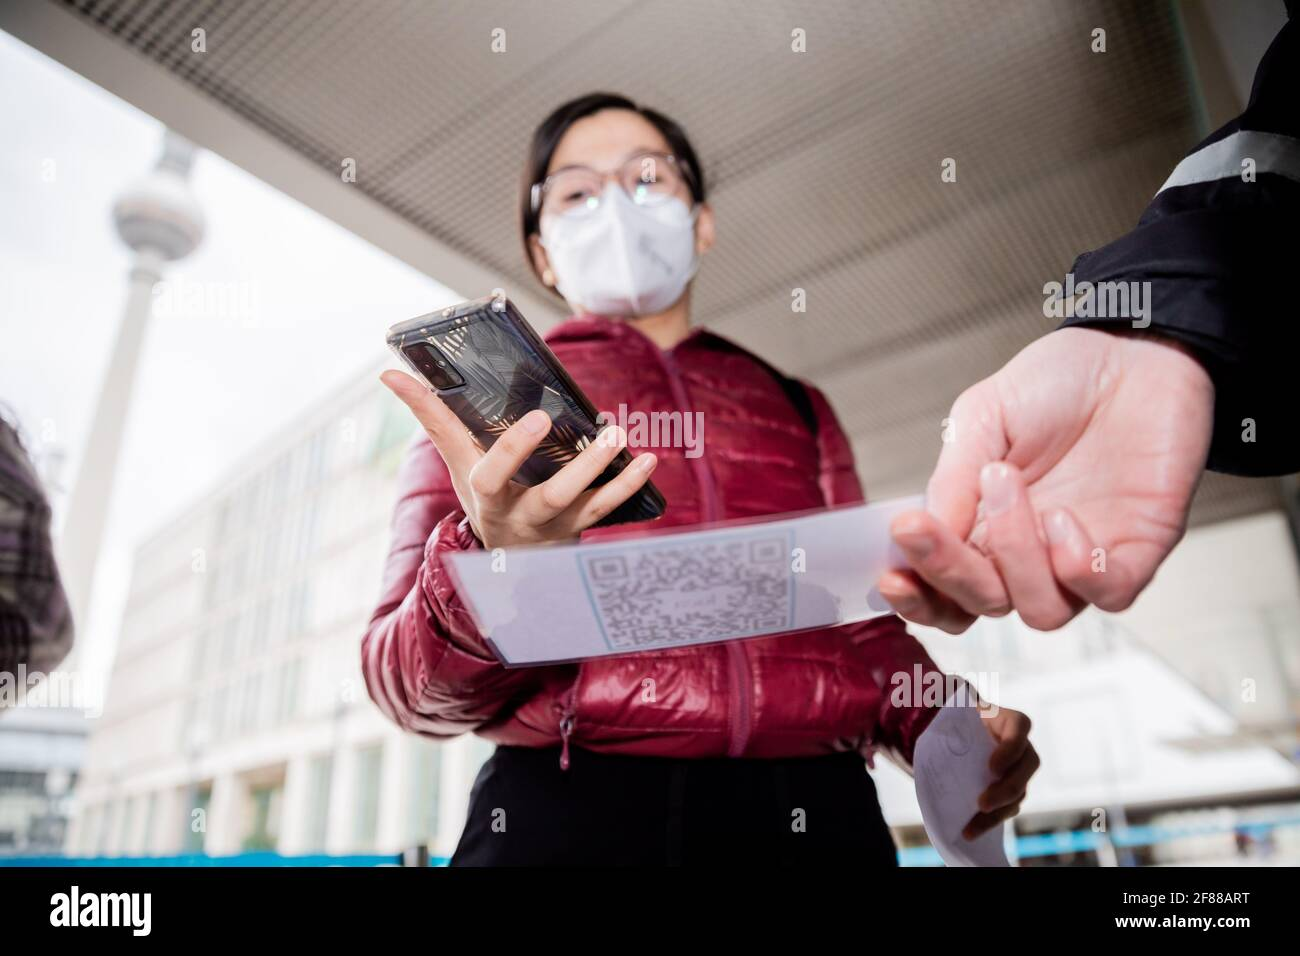 Berlin, Germany. 12th Apr, 2021. A customer scans a QR code at the entrance of a clothing store at Alexanderplatz in front of a security guard using the Luca app. The app is used to provide data for possible contact tracing. Credit: Christoph Soeder/dpa/Alamy Live News Stock Photo